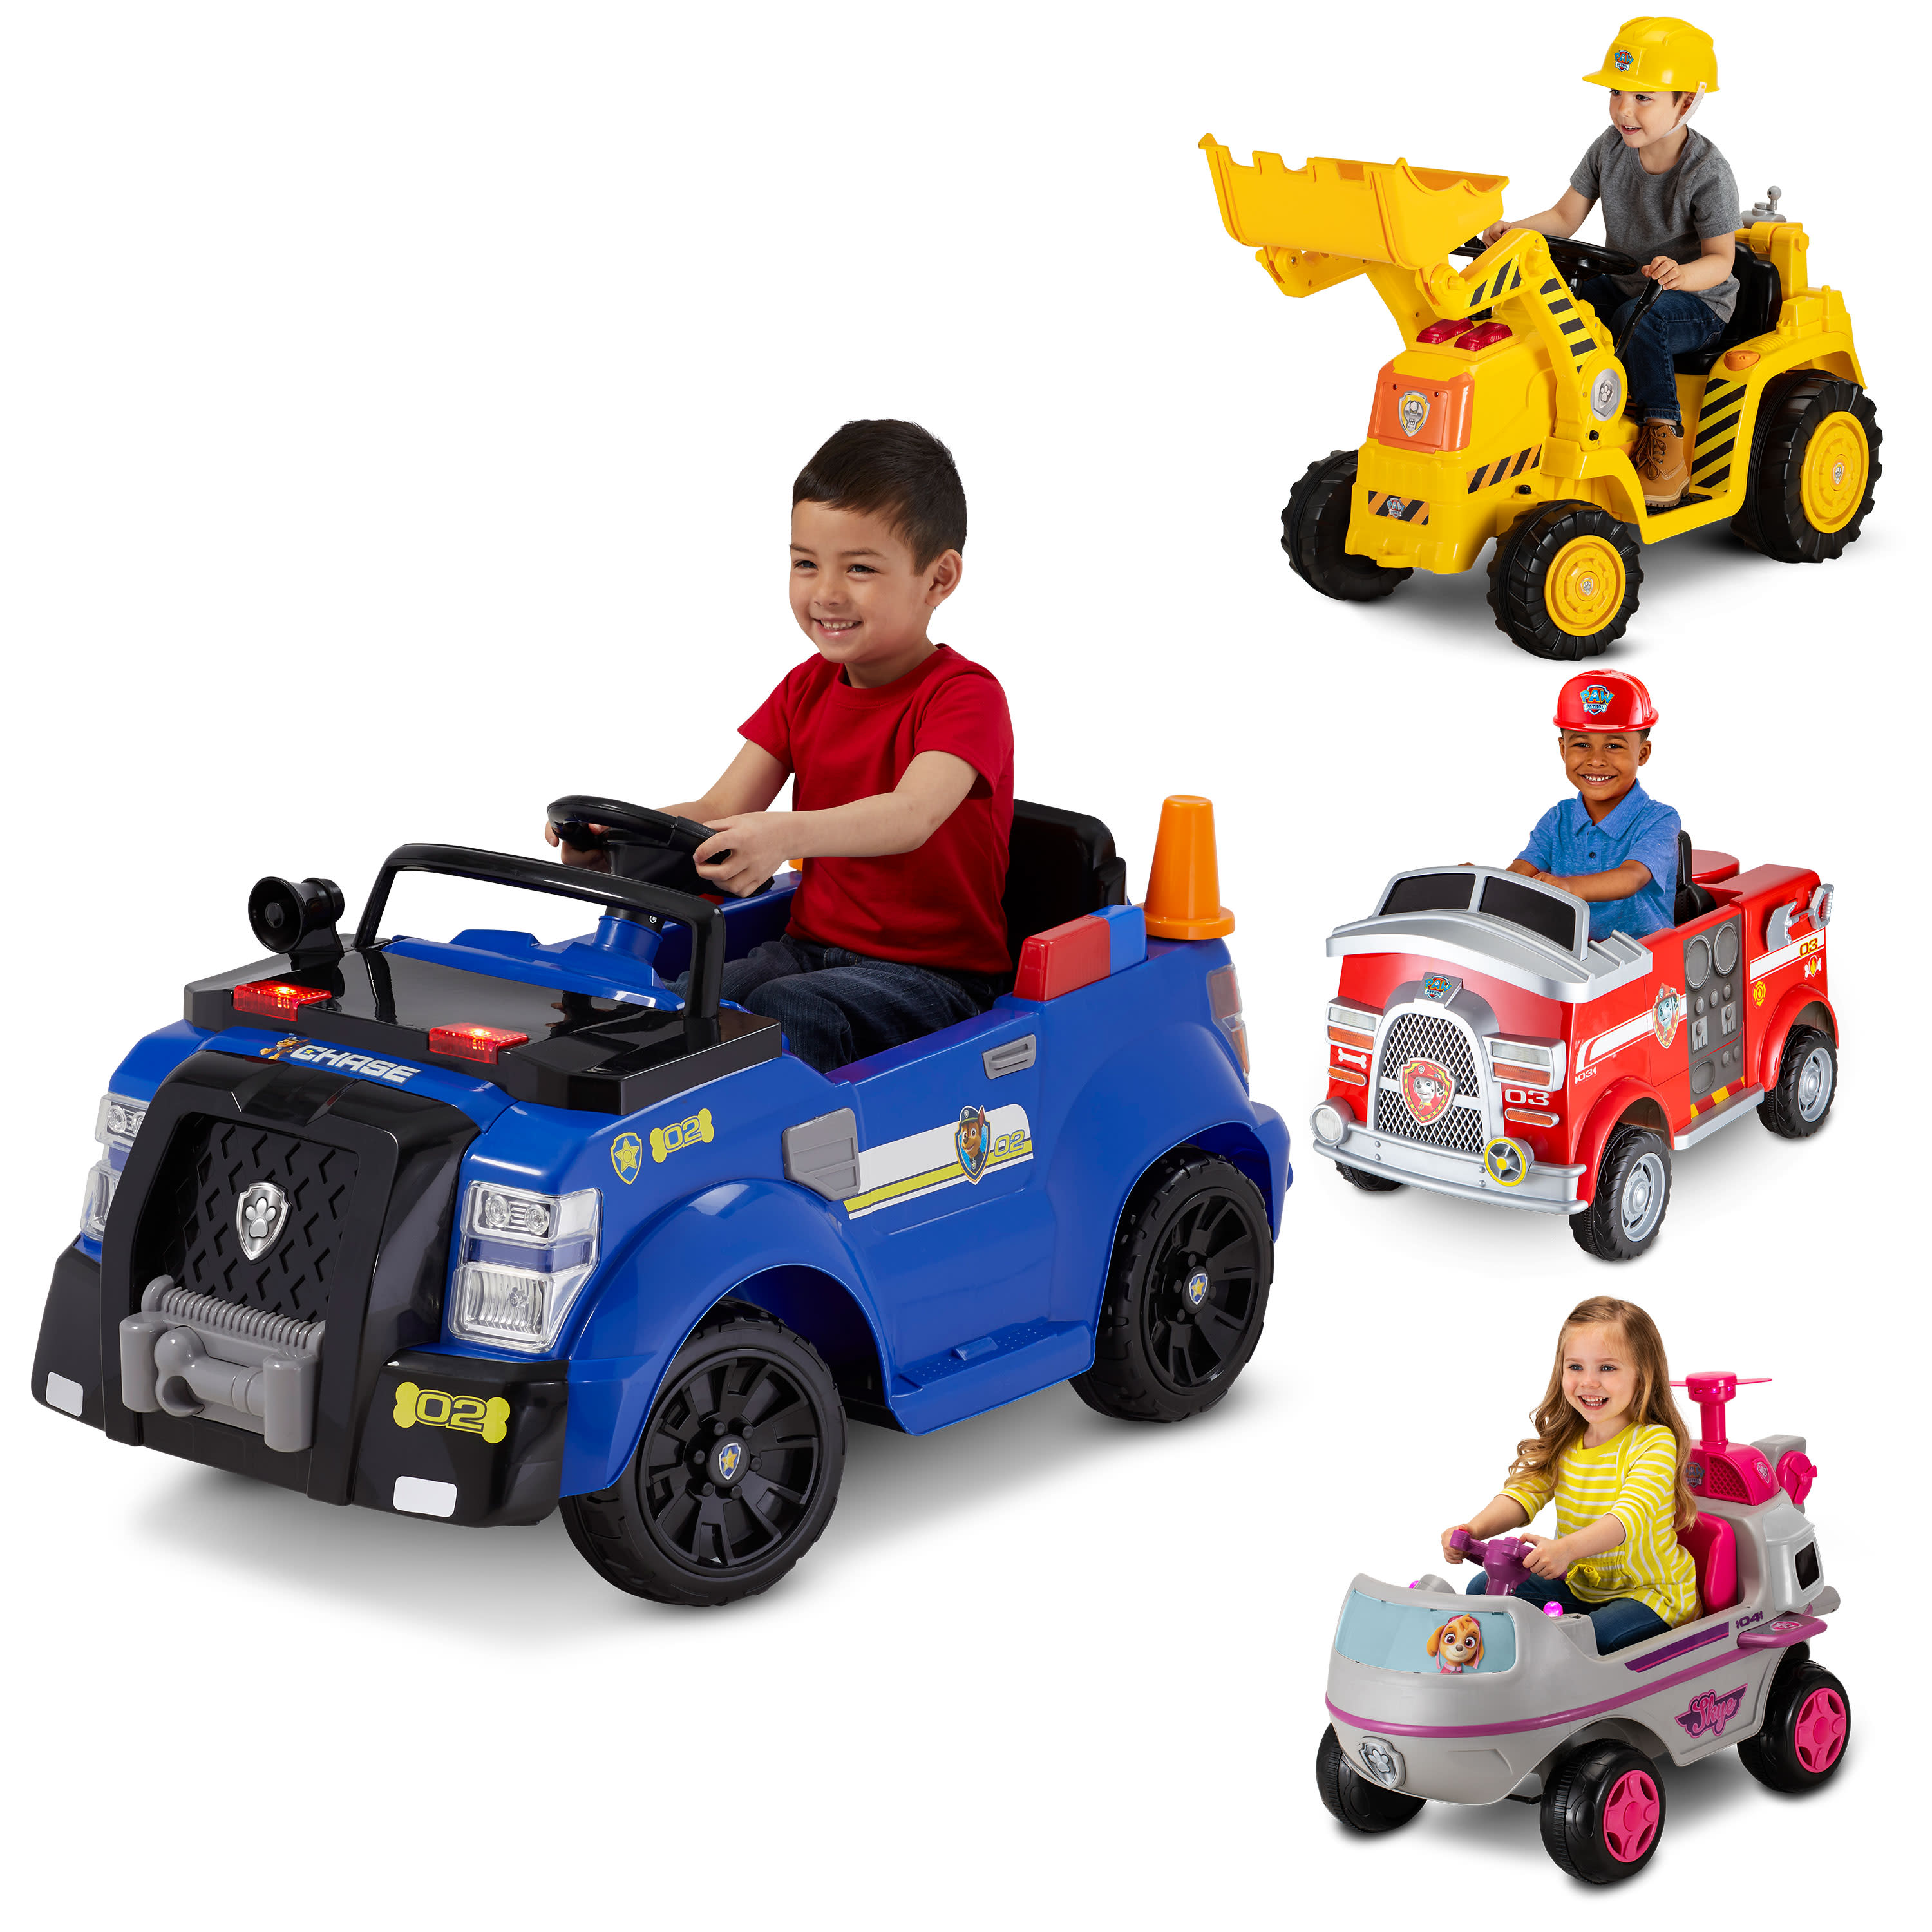 Nickelodeon's PAW Patrol: Chase Police Cruiser, 6-Volt Ride-On Toy by Kid Trax